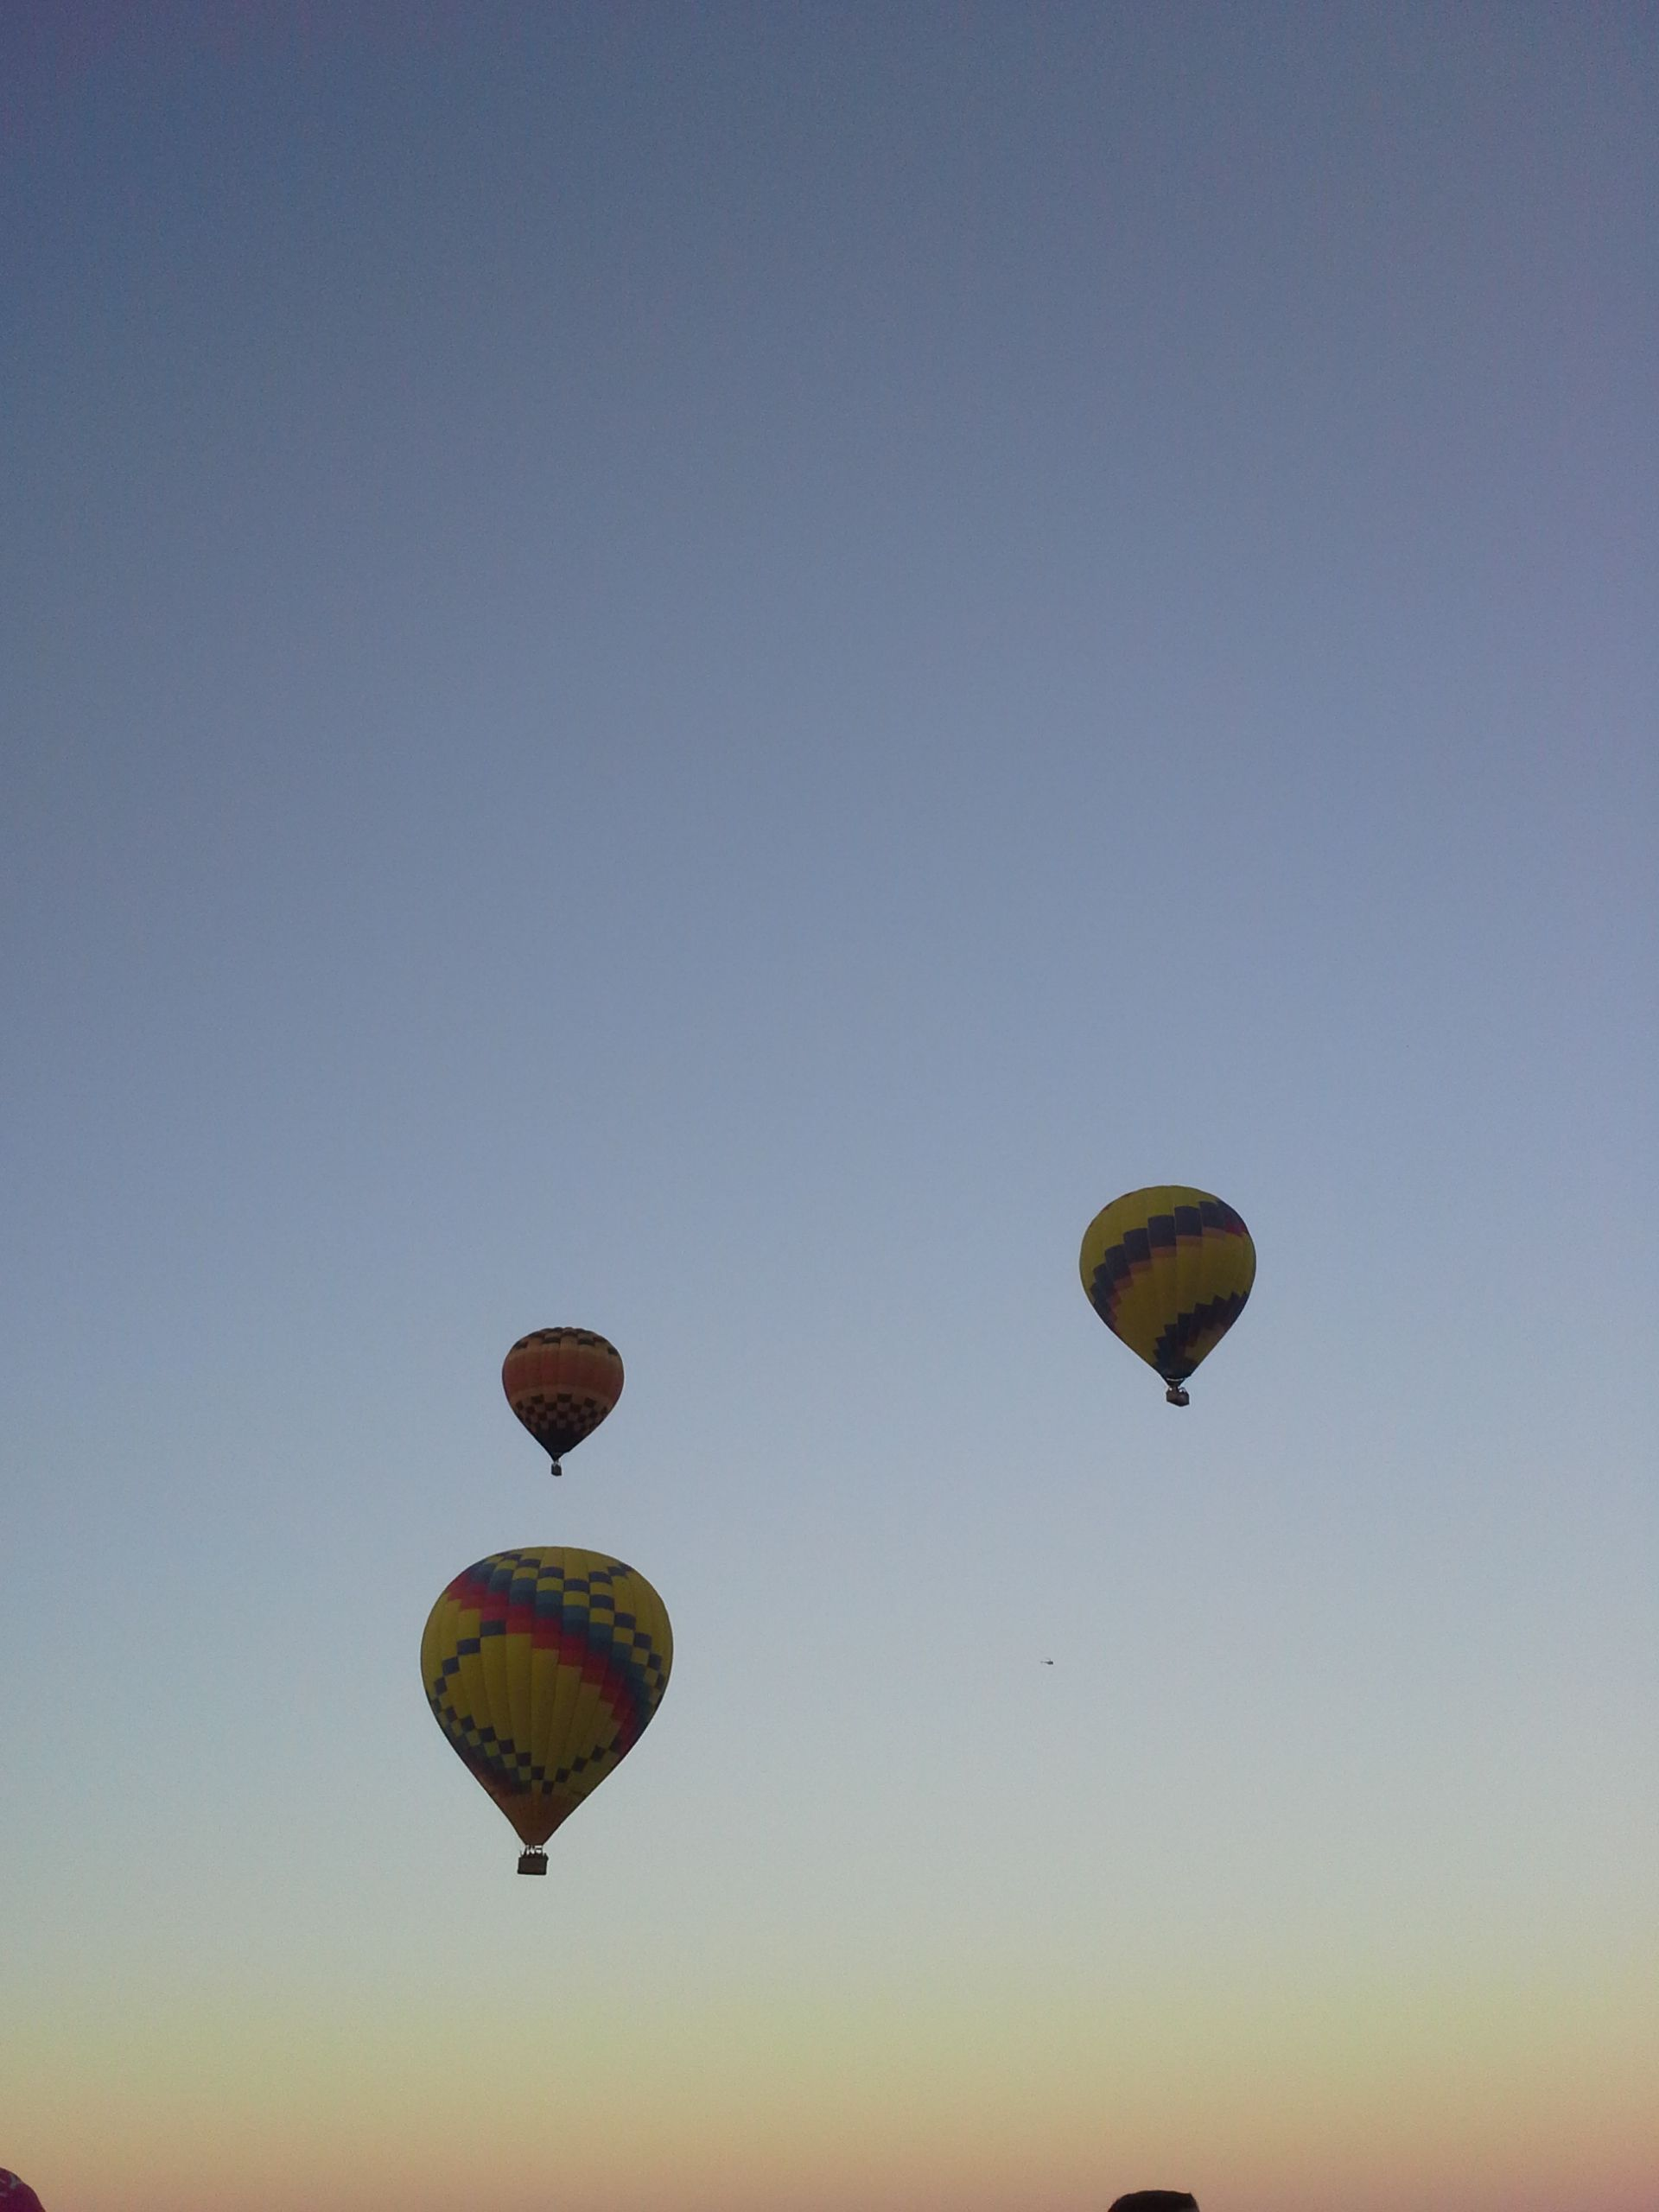 My New Mexico, my home where hot air balloons fill the sky